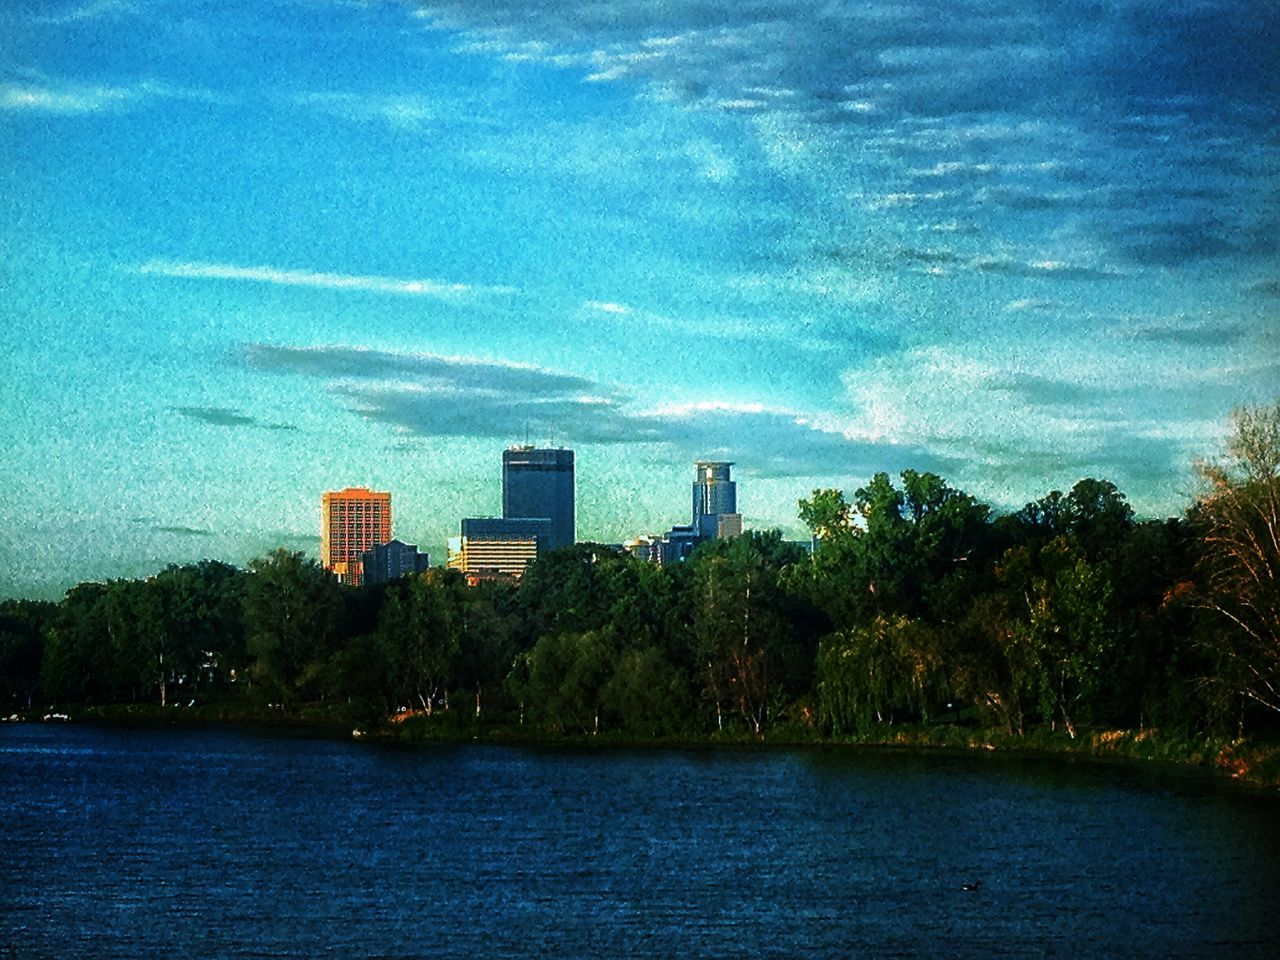 Lake Of The Isles City Of Lakes Minneapolis Urbanscape Urbanphotography Urban Landscape Urban Photography Skyline Cityscapes Sky And Clouds